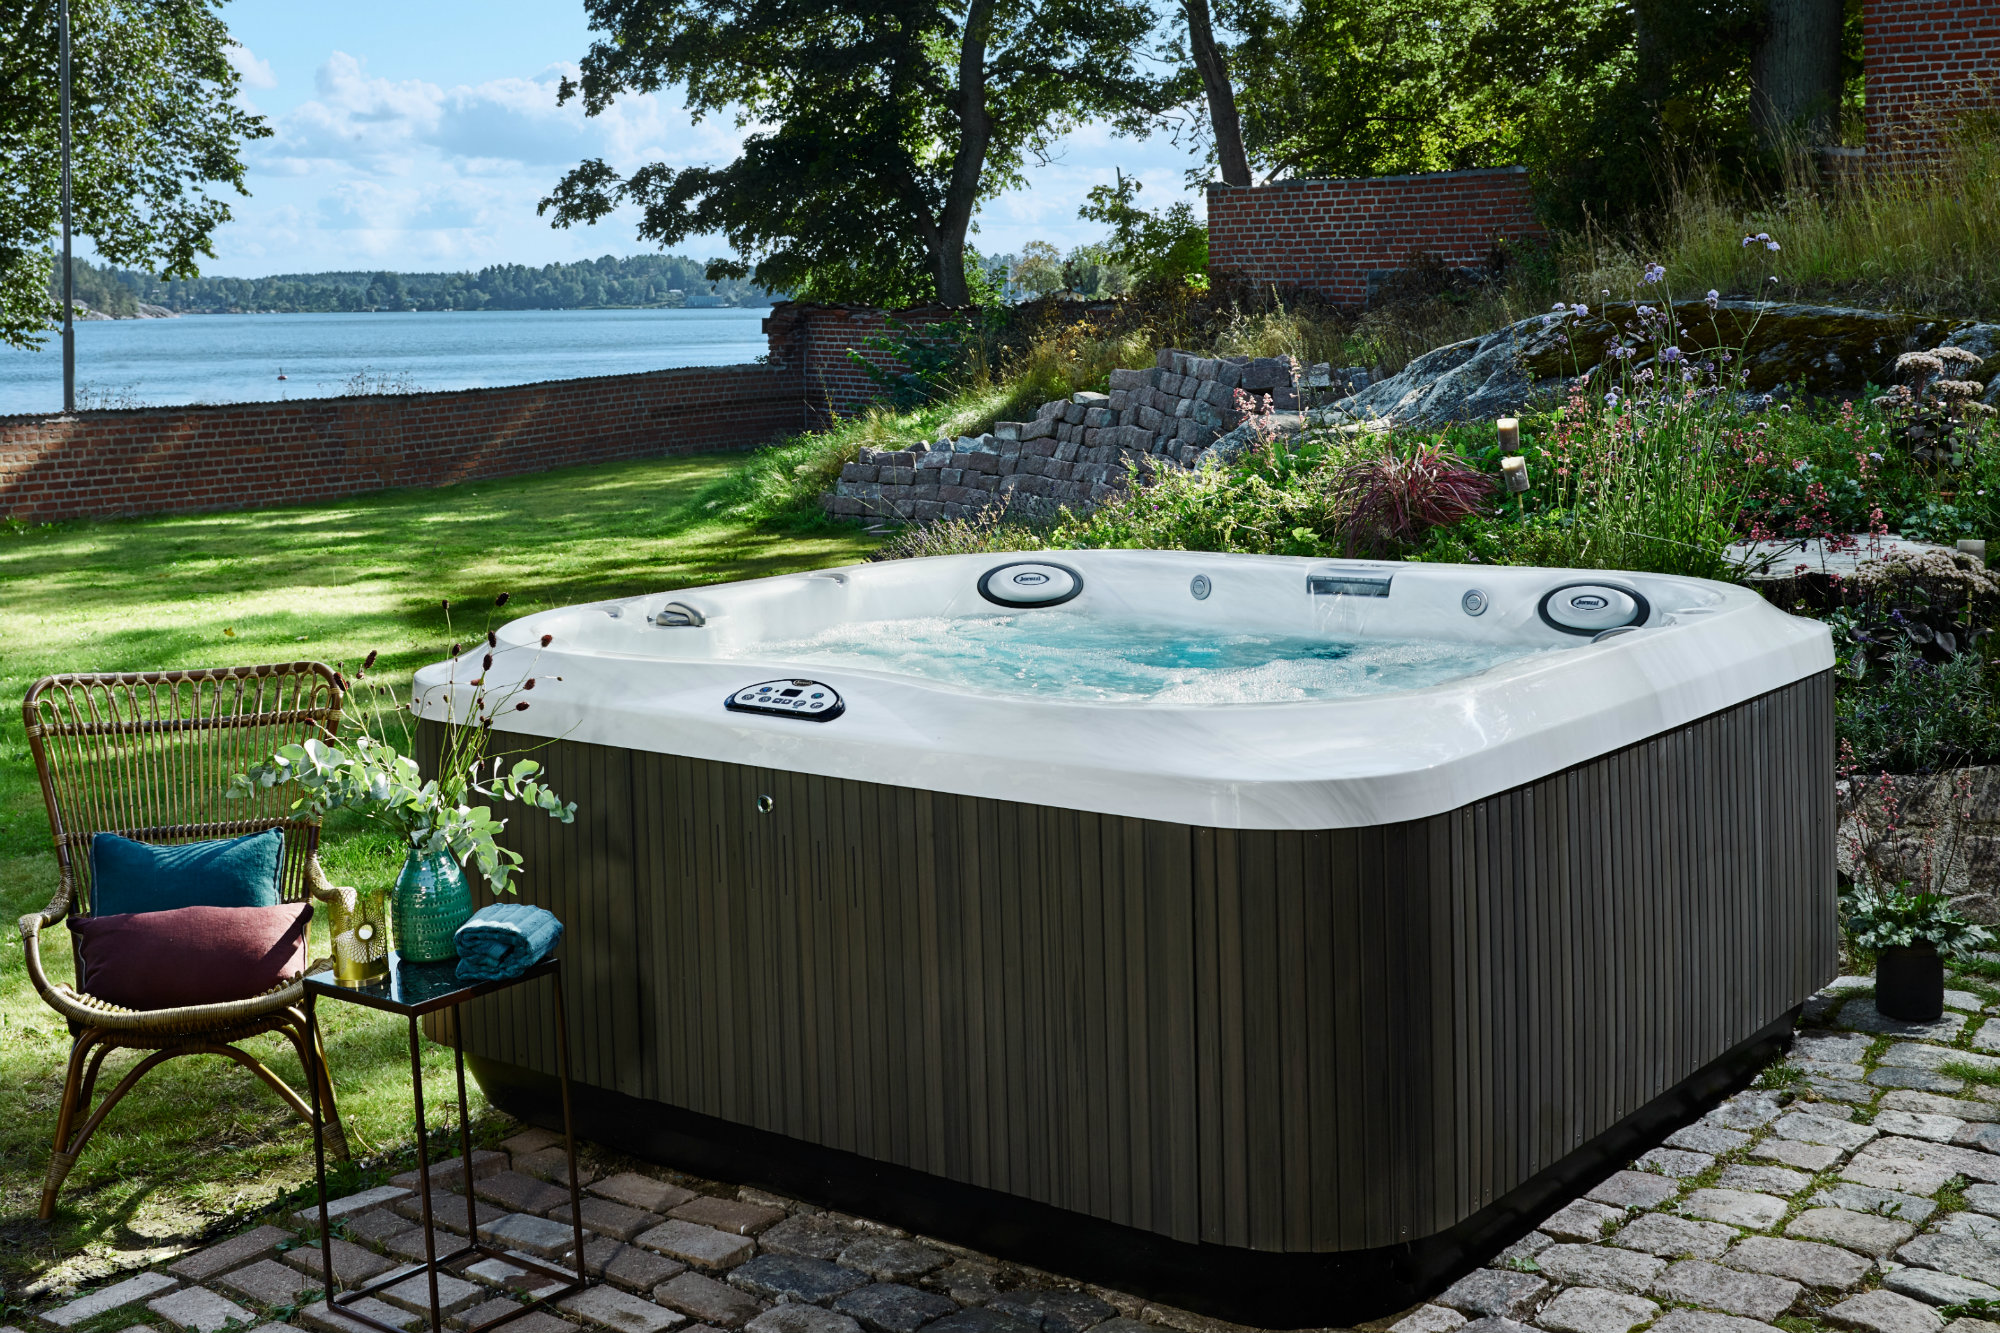 Jacuzzi Pool Bilder State Of The Market Portable Spas Pool And Spa News Spas